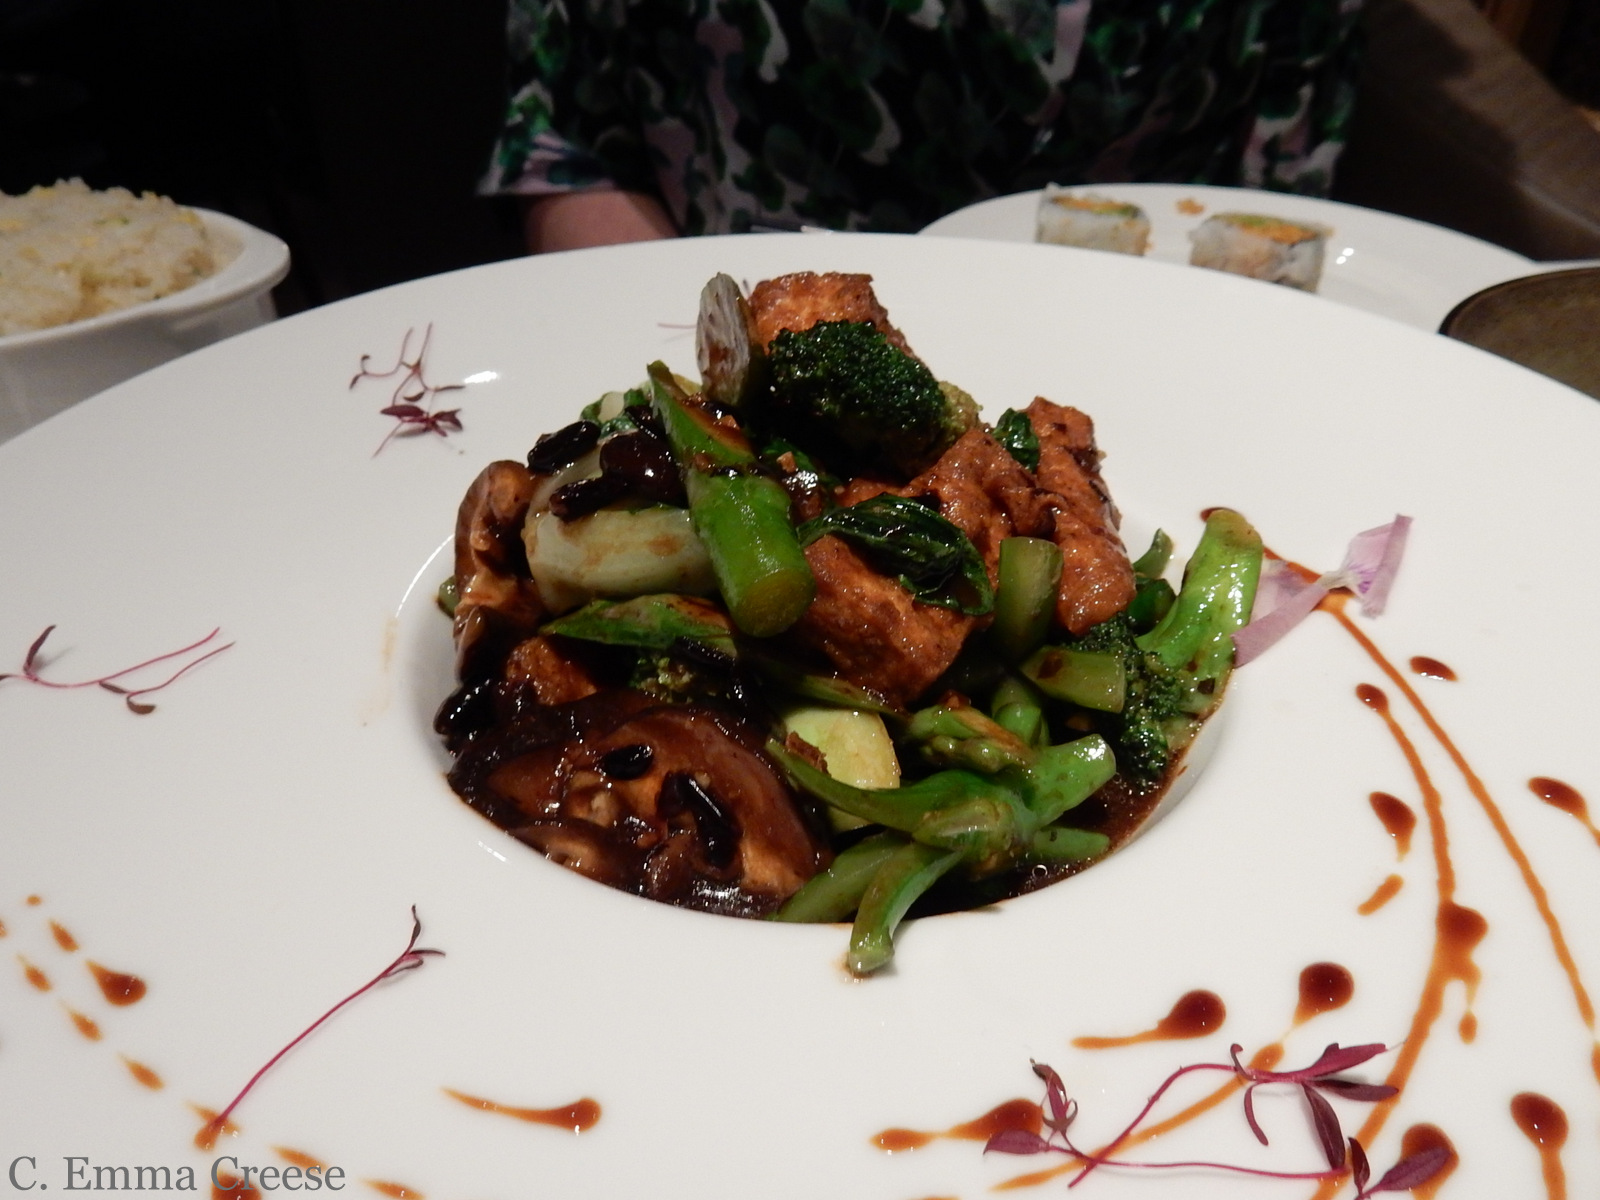 Chai Wu Luxury Asian Restaurant Harrods Adventures of a London Kiwi